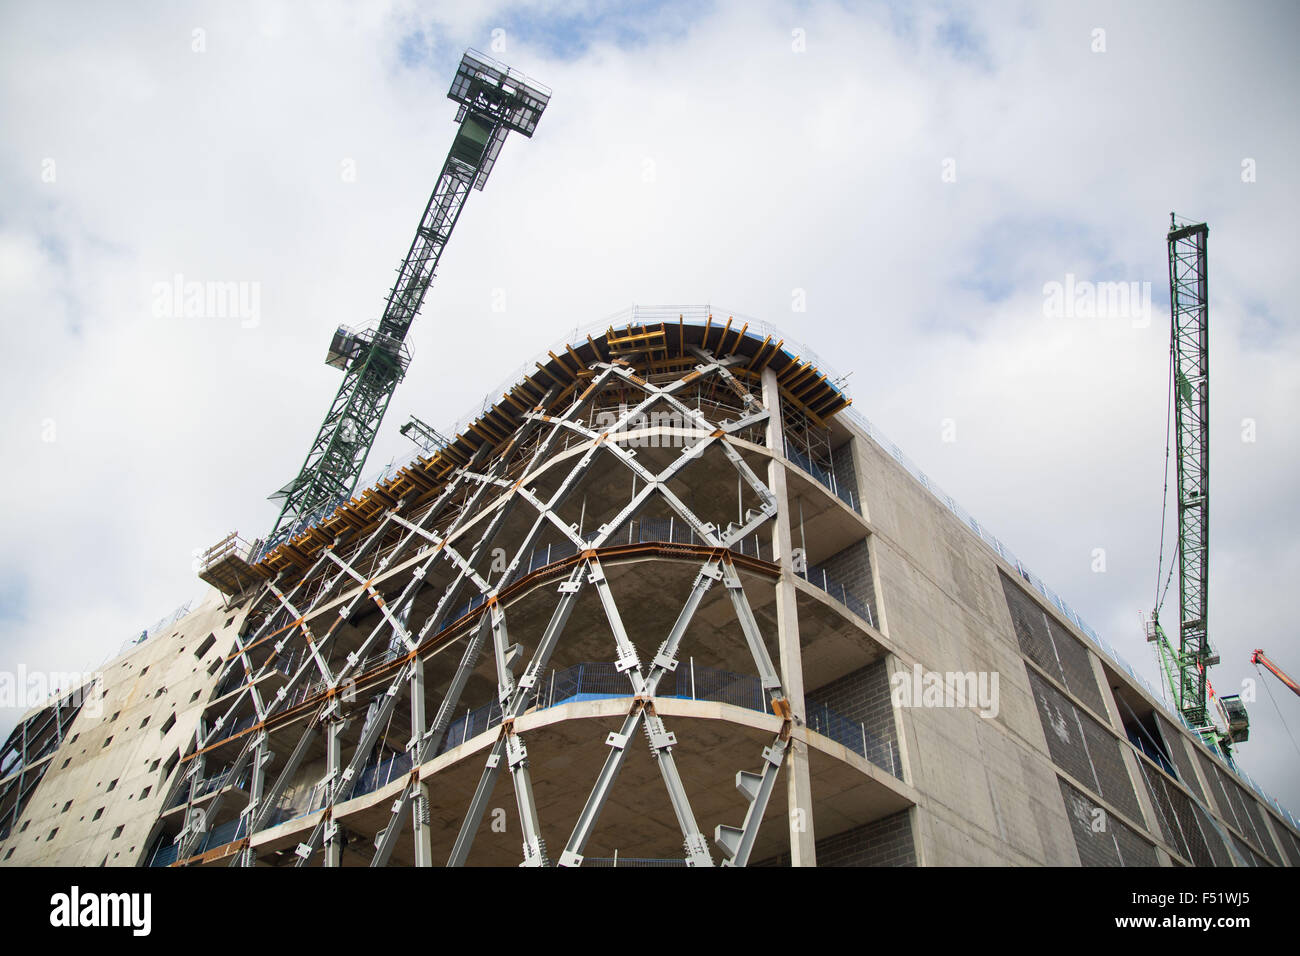 Victoria Gate shopping centre under construction in Leeds, West Yorkshire, Uk. - Stock Image